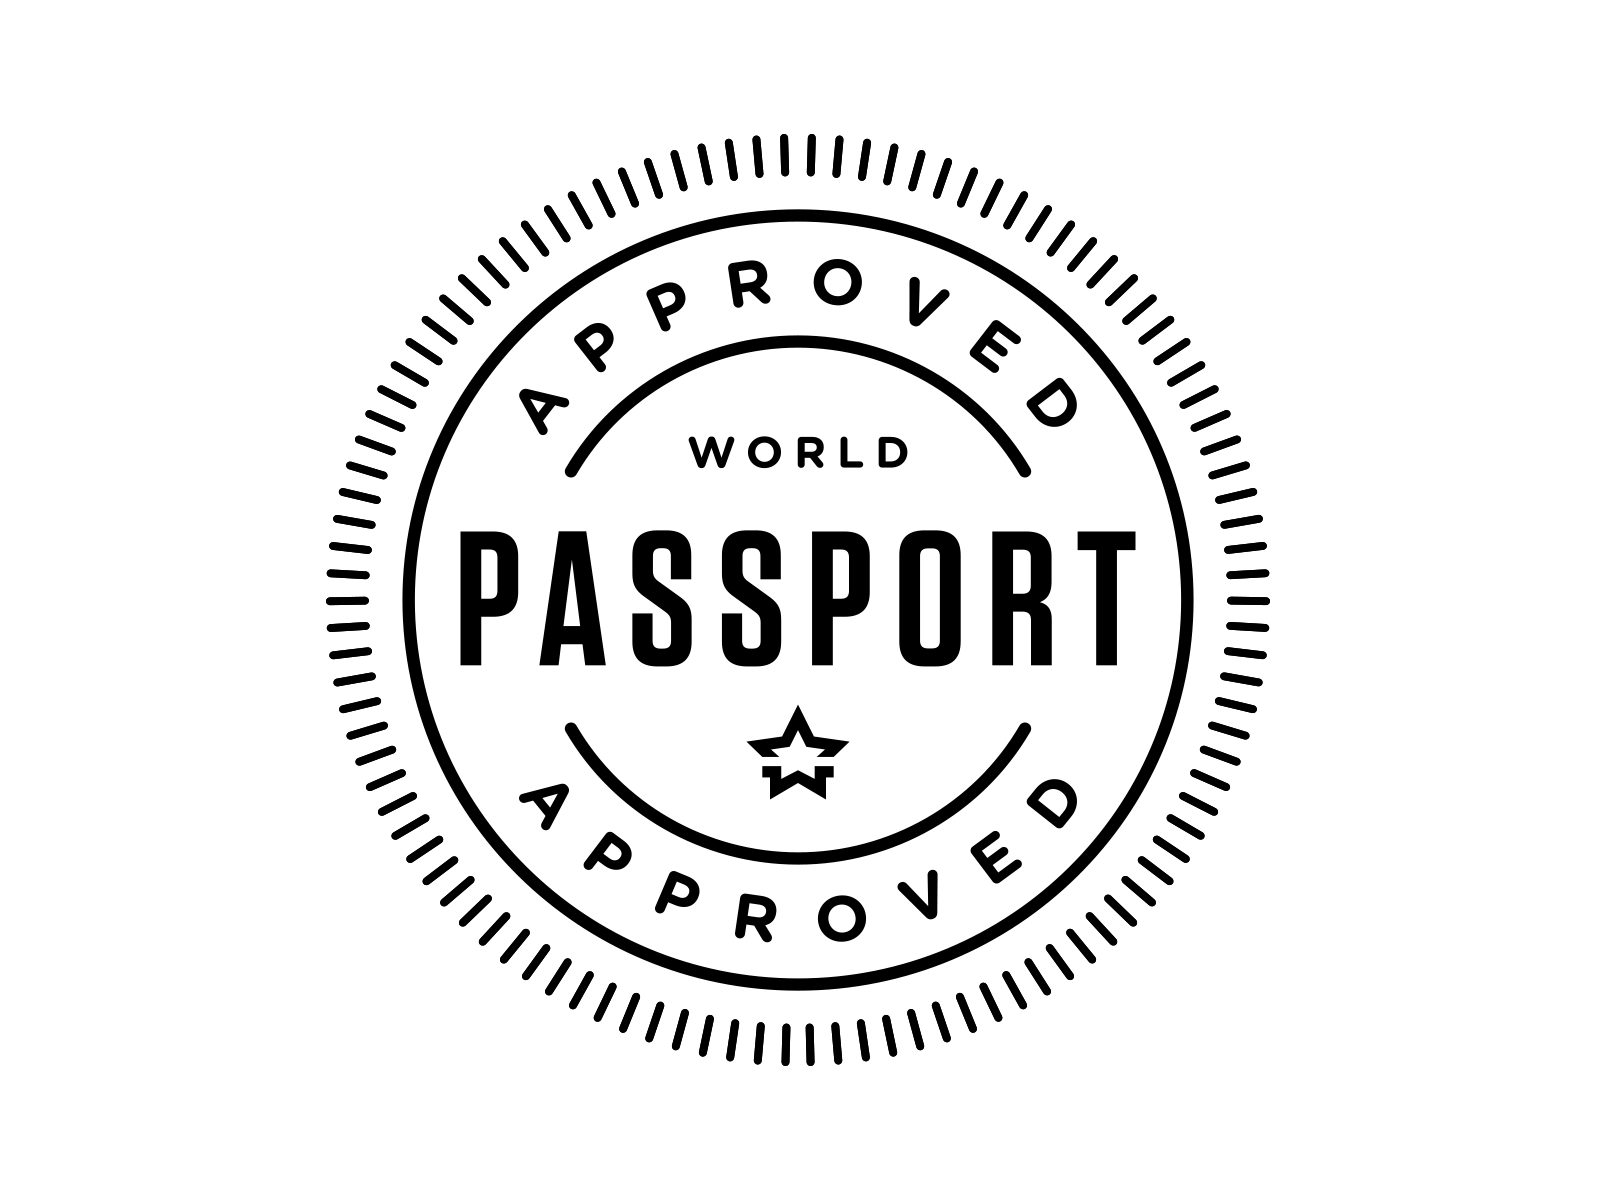 small resolution of approved world passport baby passport wine passport passport stamps passport invitations invites